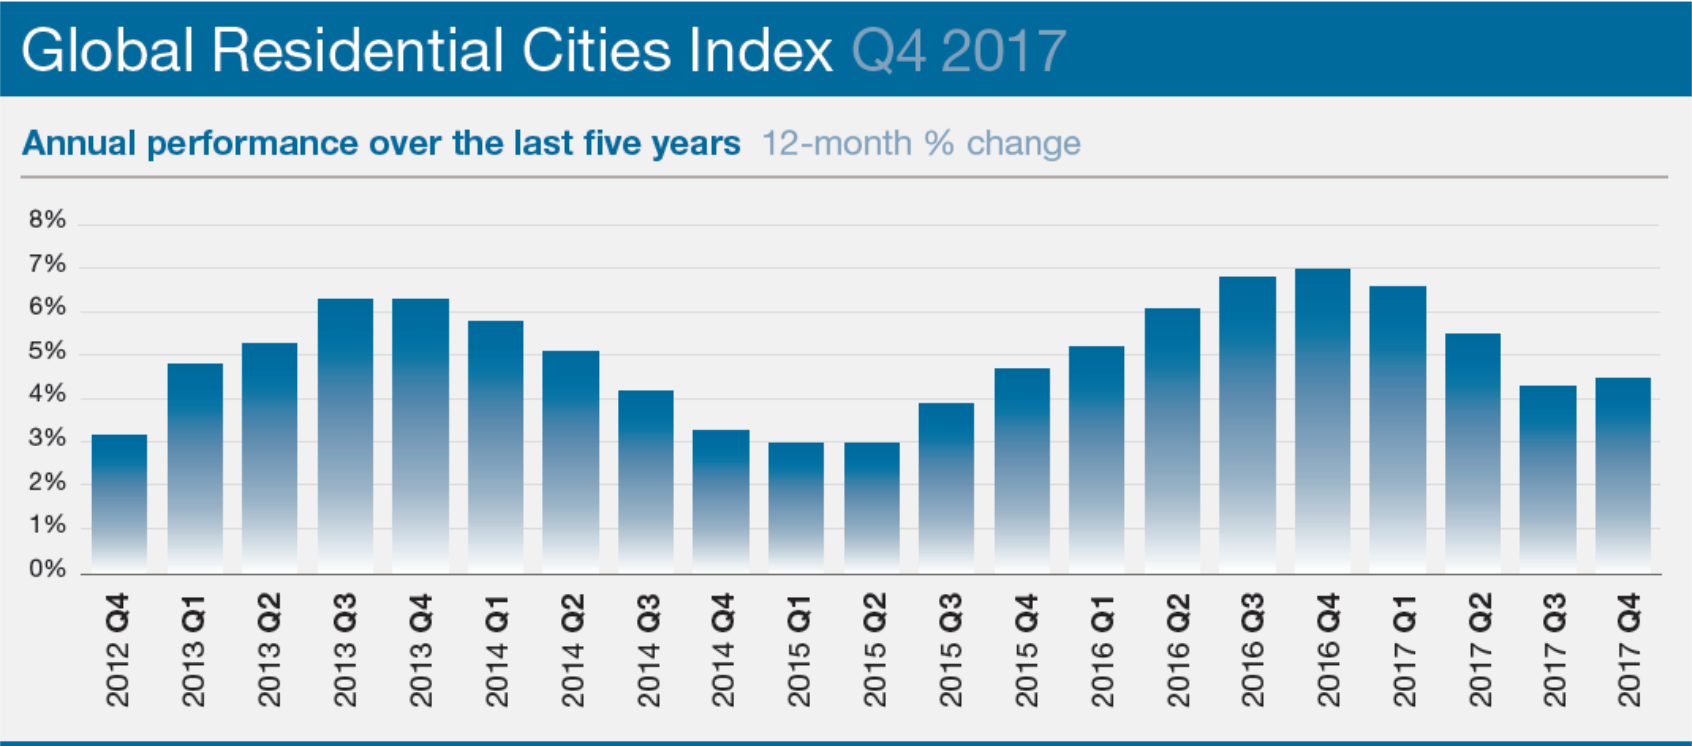 Global residental sities index